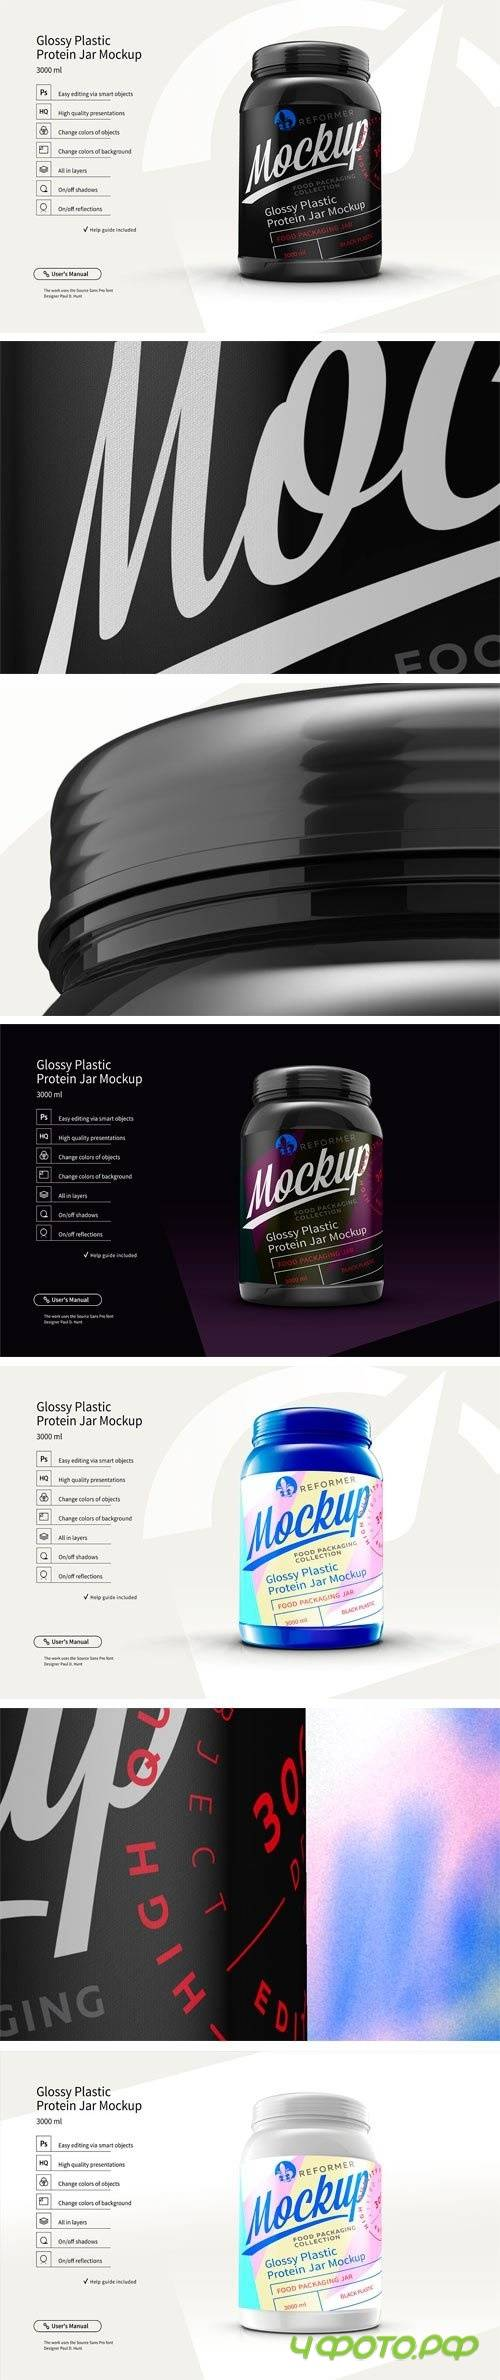 Plastic Protein Jar 2 Mock-Ups Files 2422877